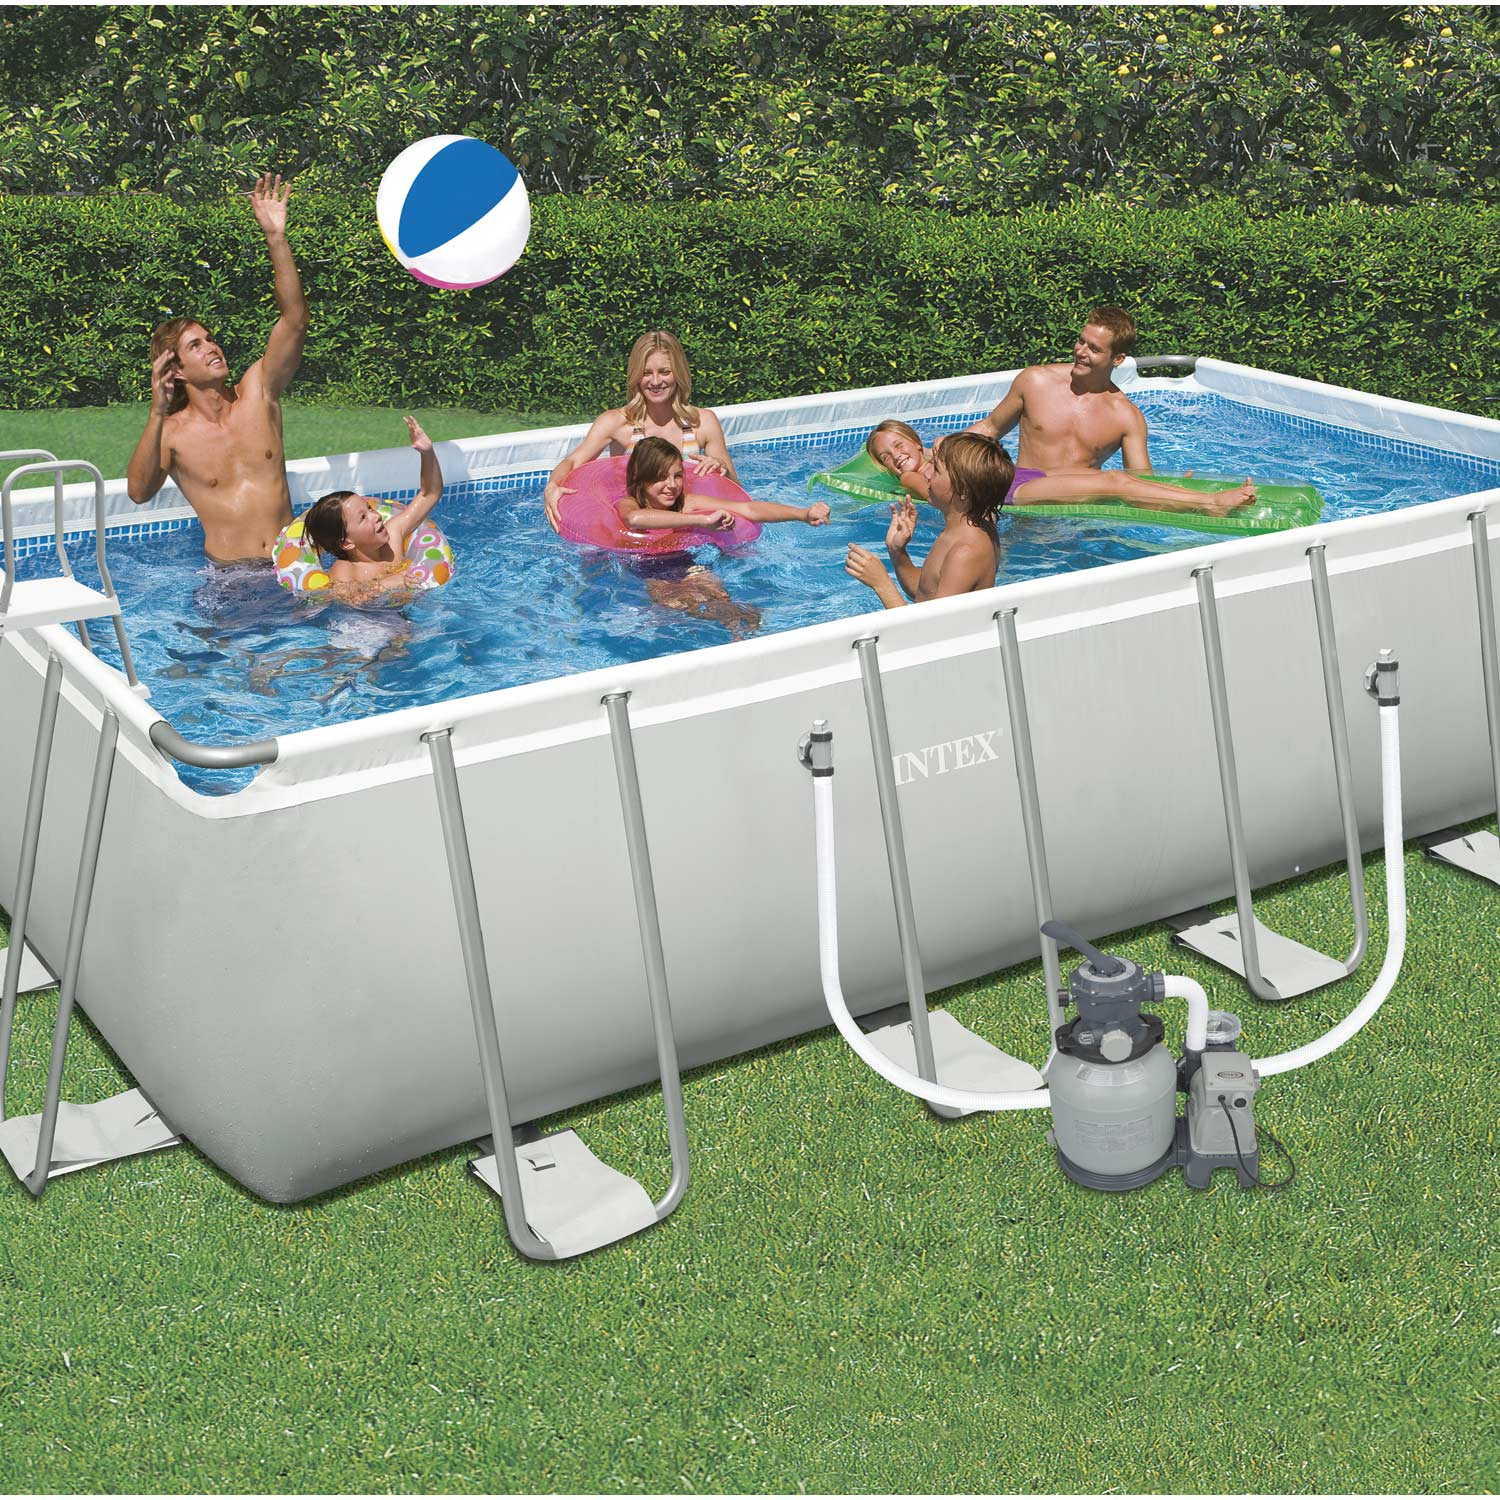 Piscine hors sol autoportante tubulaire ultra silver intex for Piscine hors sol naturelle